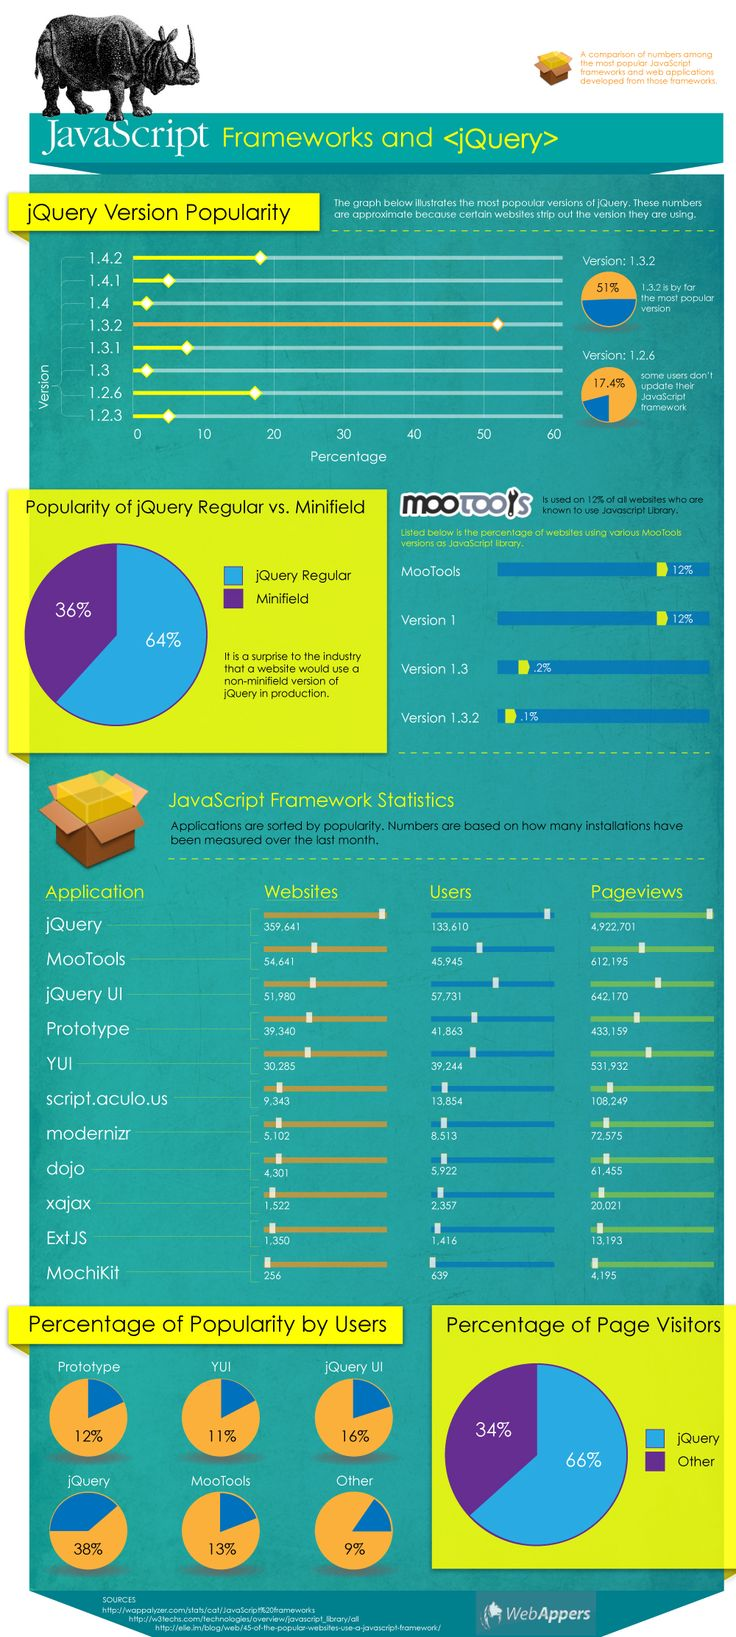 Check different JS version popularity in this #infographic!  - Javascript Frameworks and jQuery #coding